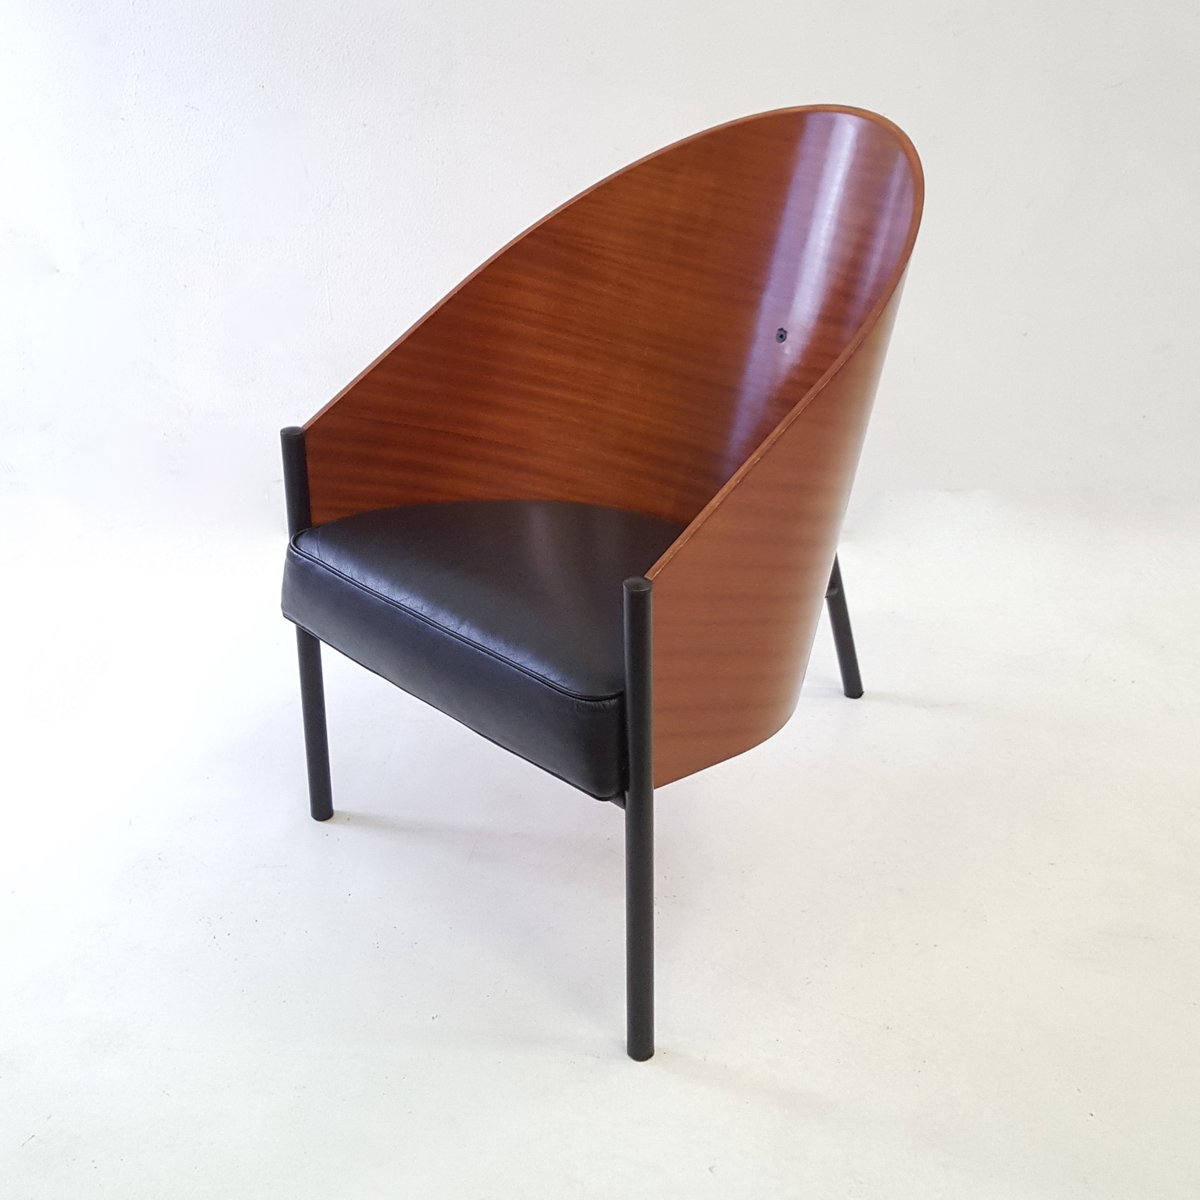 Philip Starck Pratfall Armchair By Philippe Starck For Driade 1980s